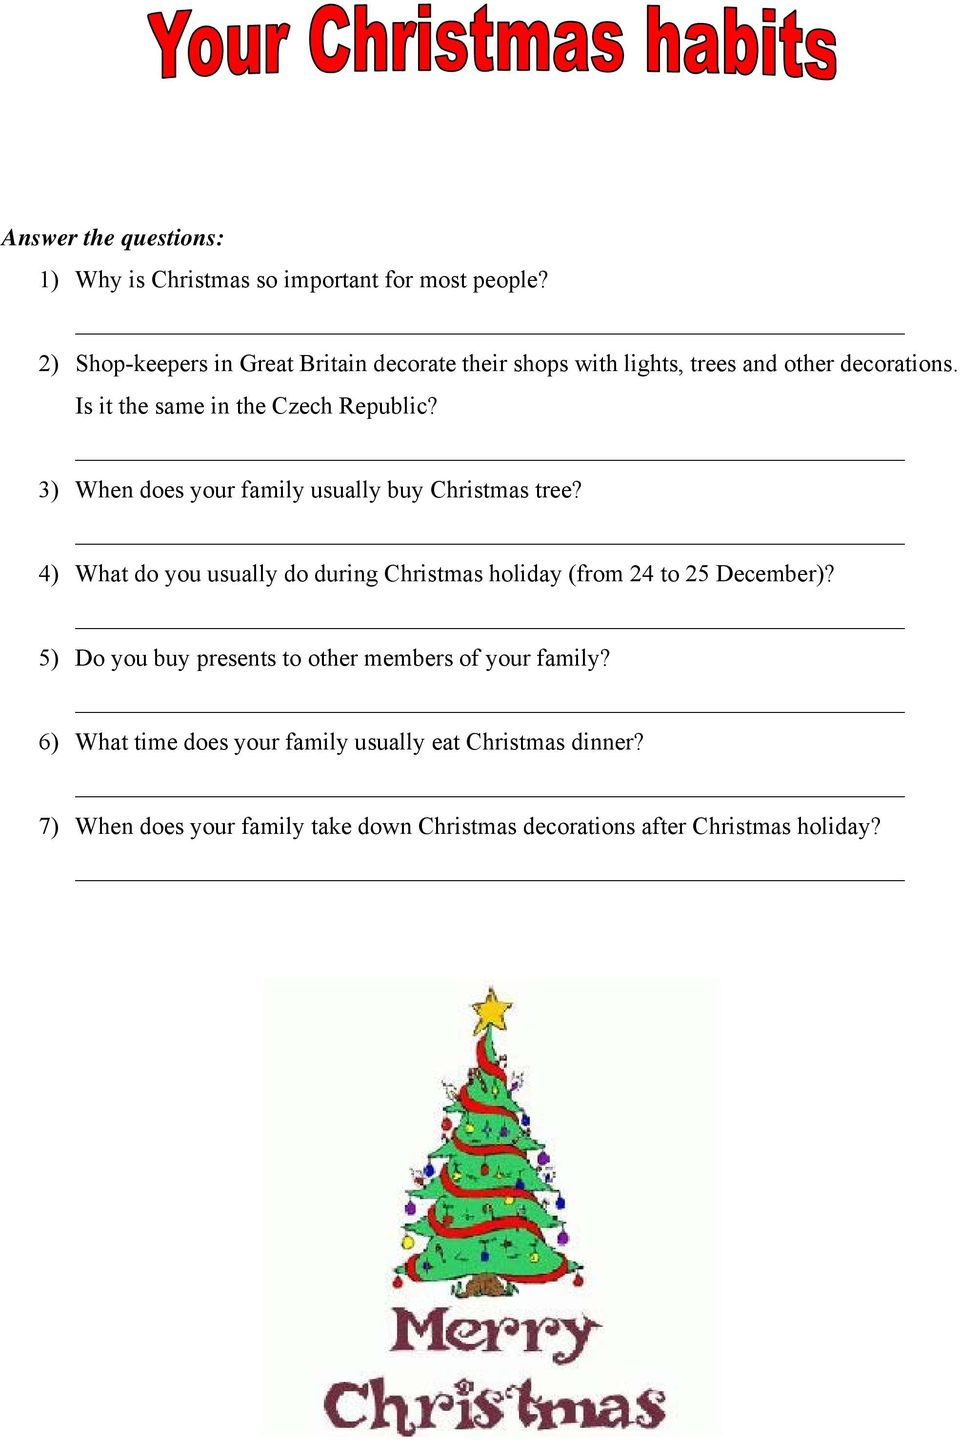 3) When does your family usually buy Christmas tree? 4) What do you usually do during Christmas holiday (from 24 to 25 December)?